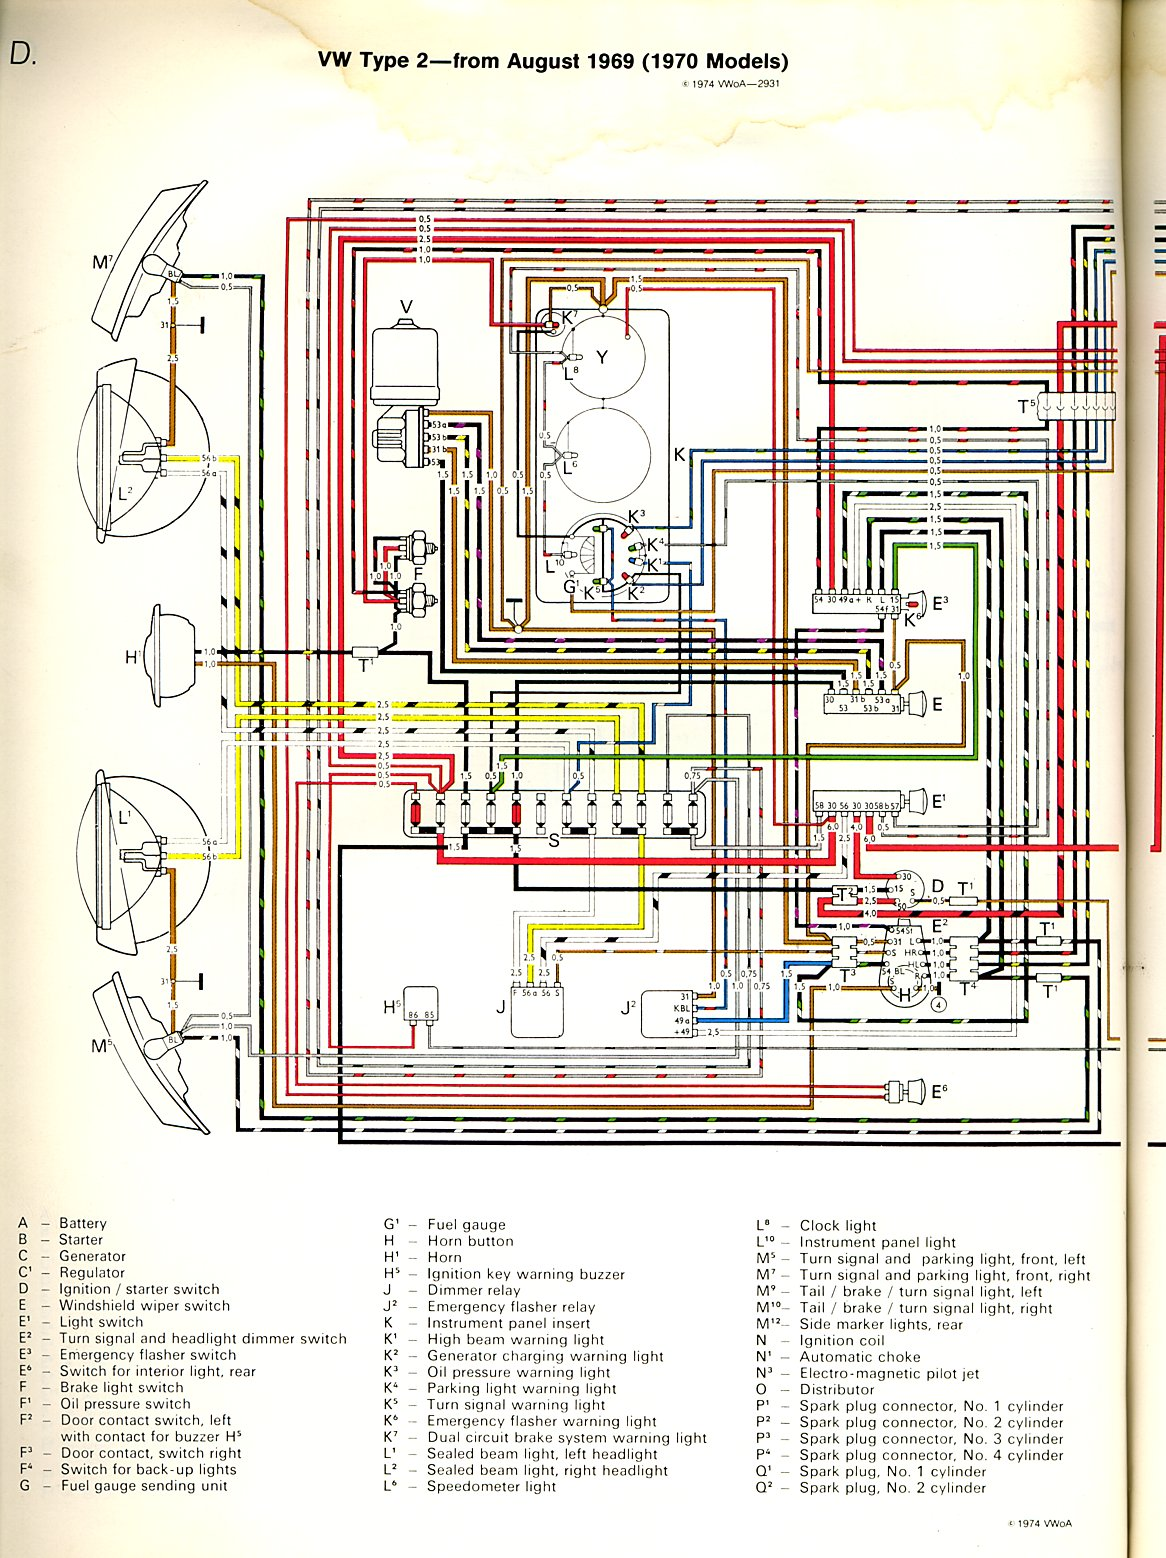 Thesamba Com Type 2 Wiring Diagrams 1960 VW Beetle Wiring Diagram 1977 Vw  Bus Wiring Diagram